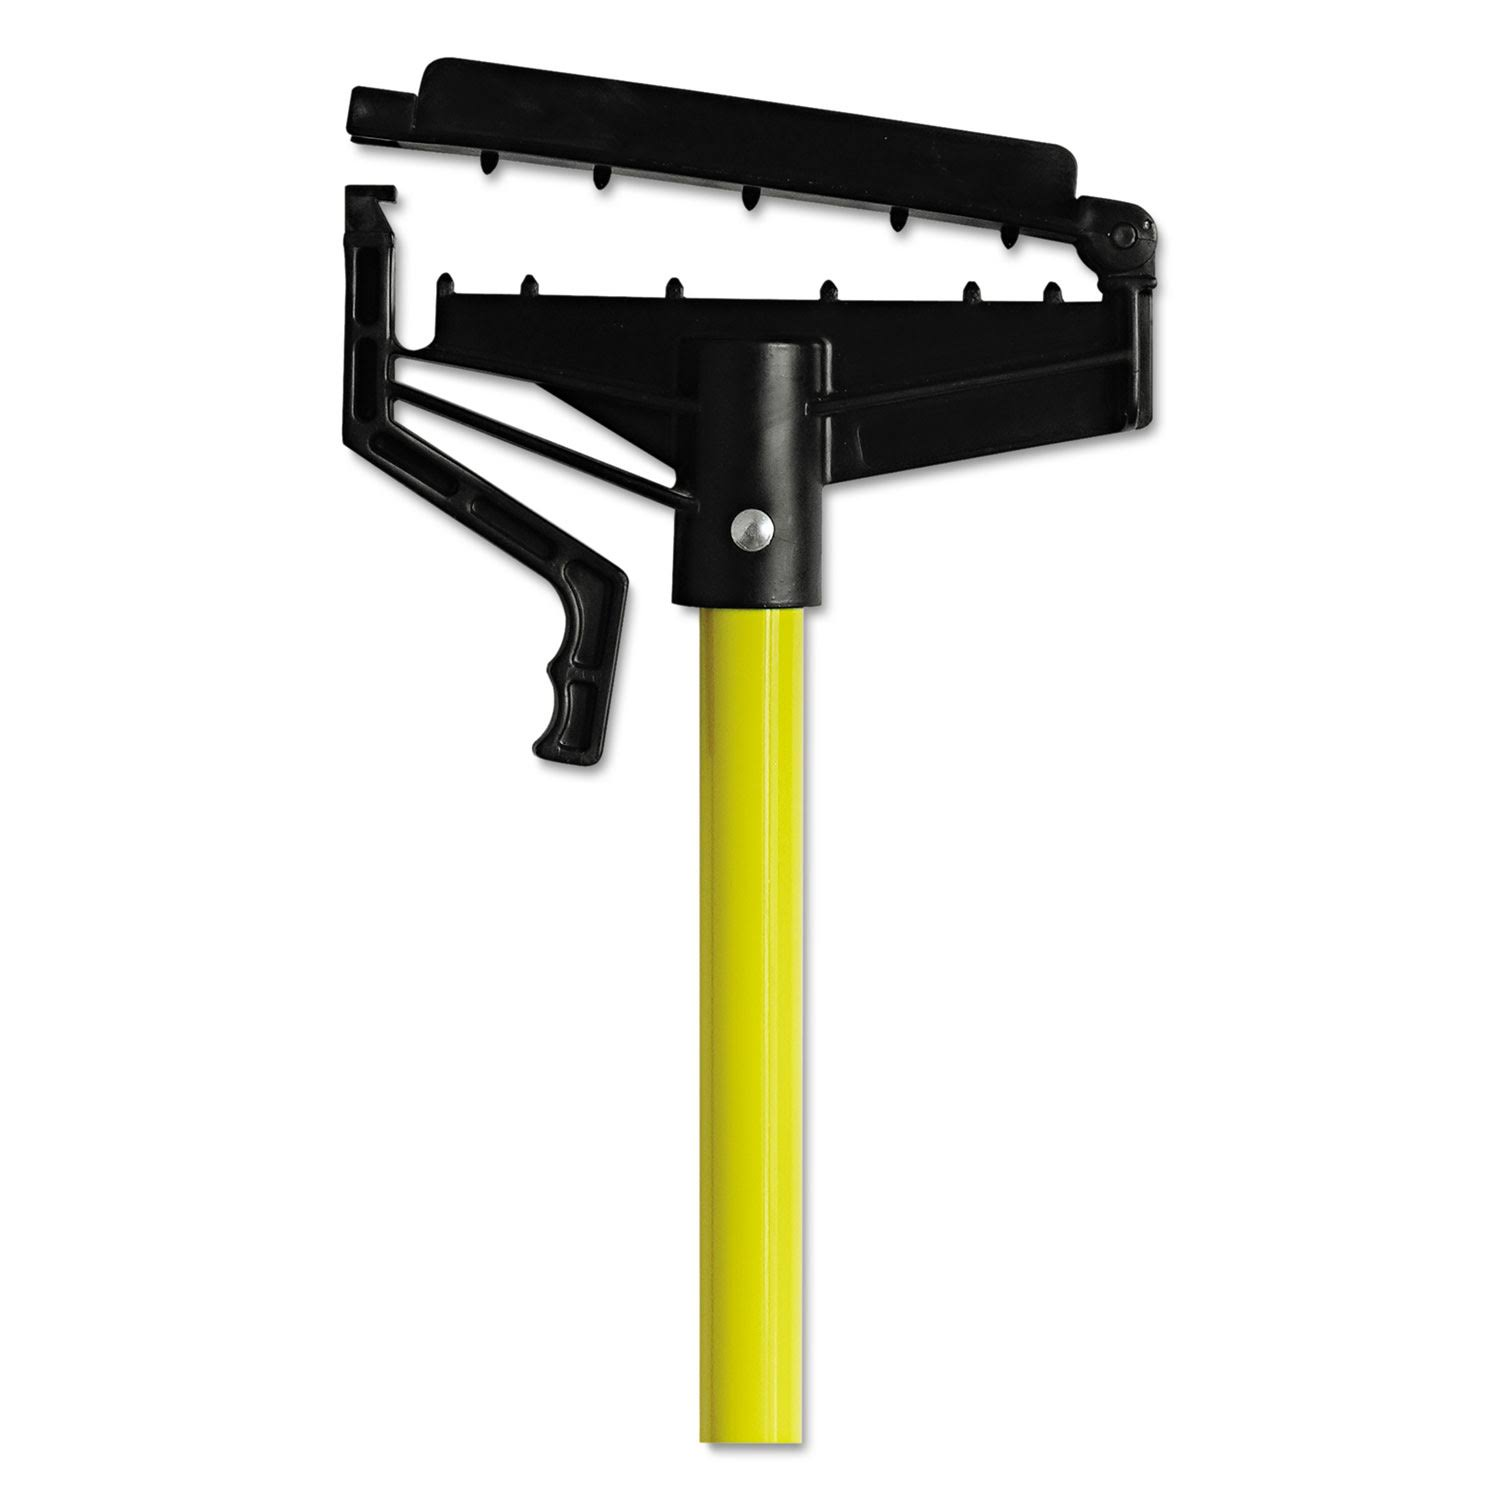 O-Cedar Commercial Quick Change Mop Stick - Yellow Fiberglass Handle